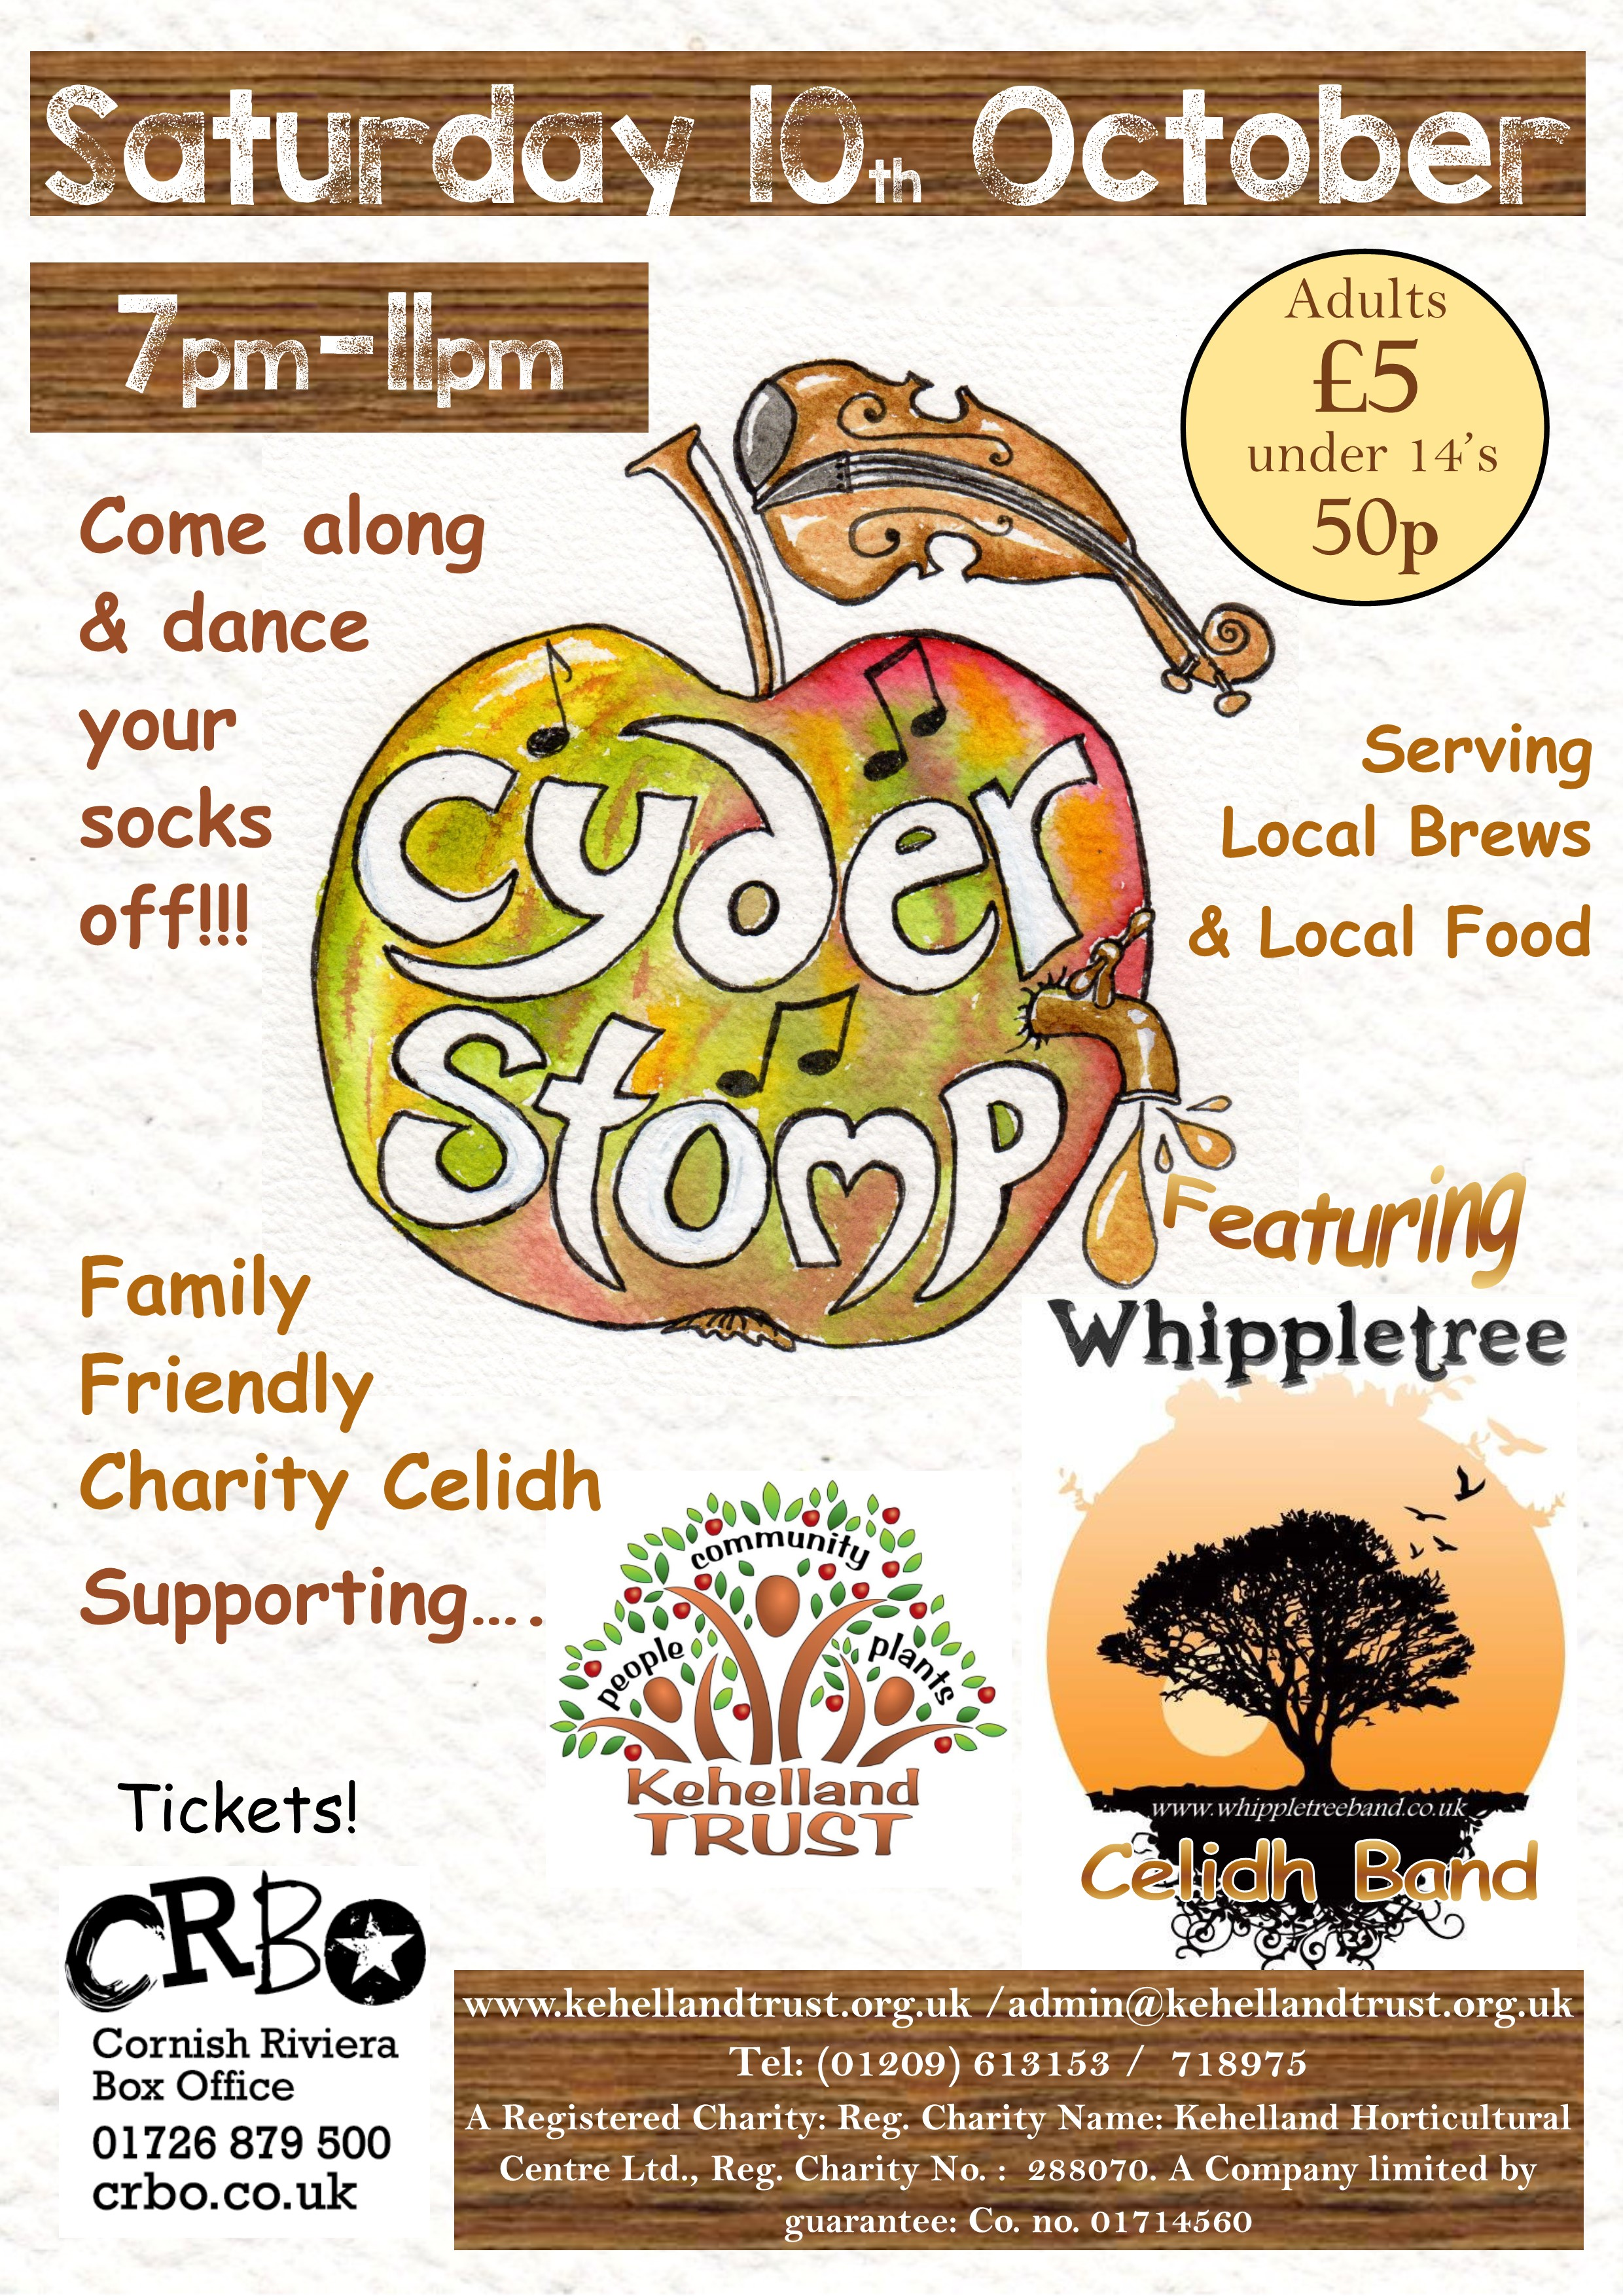 EVENTS CYDER STOMP 2015